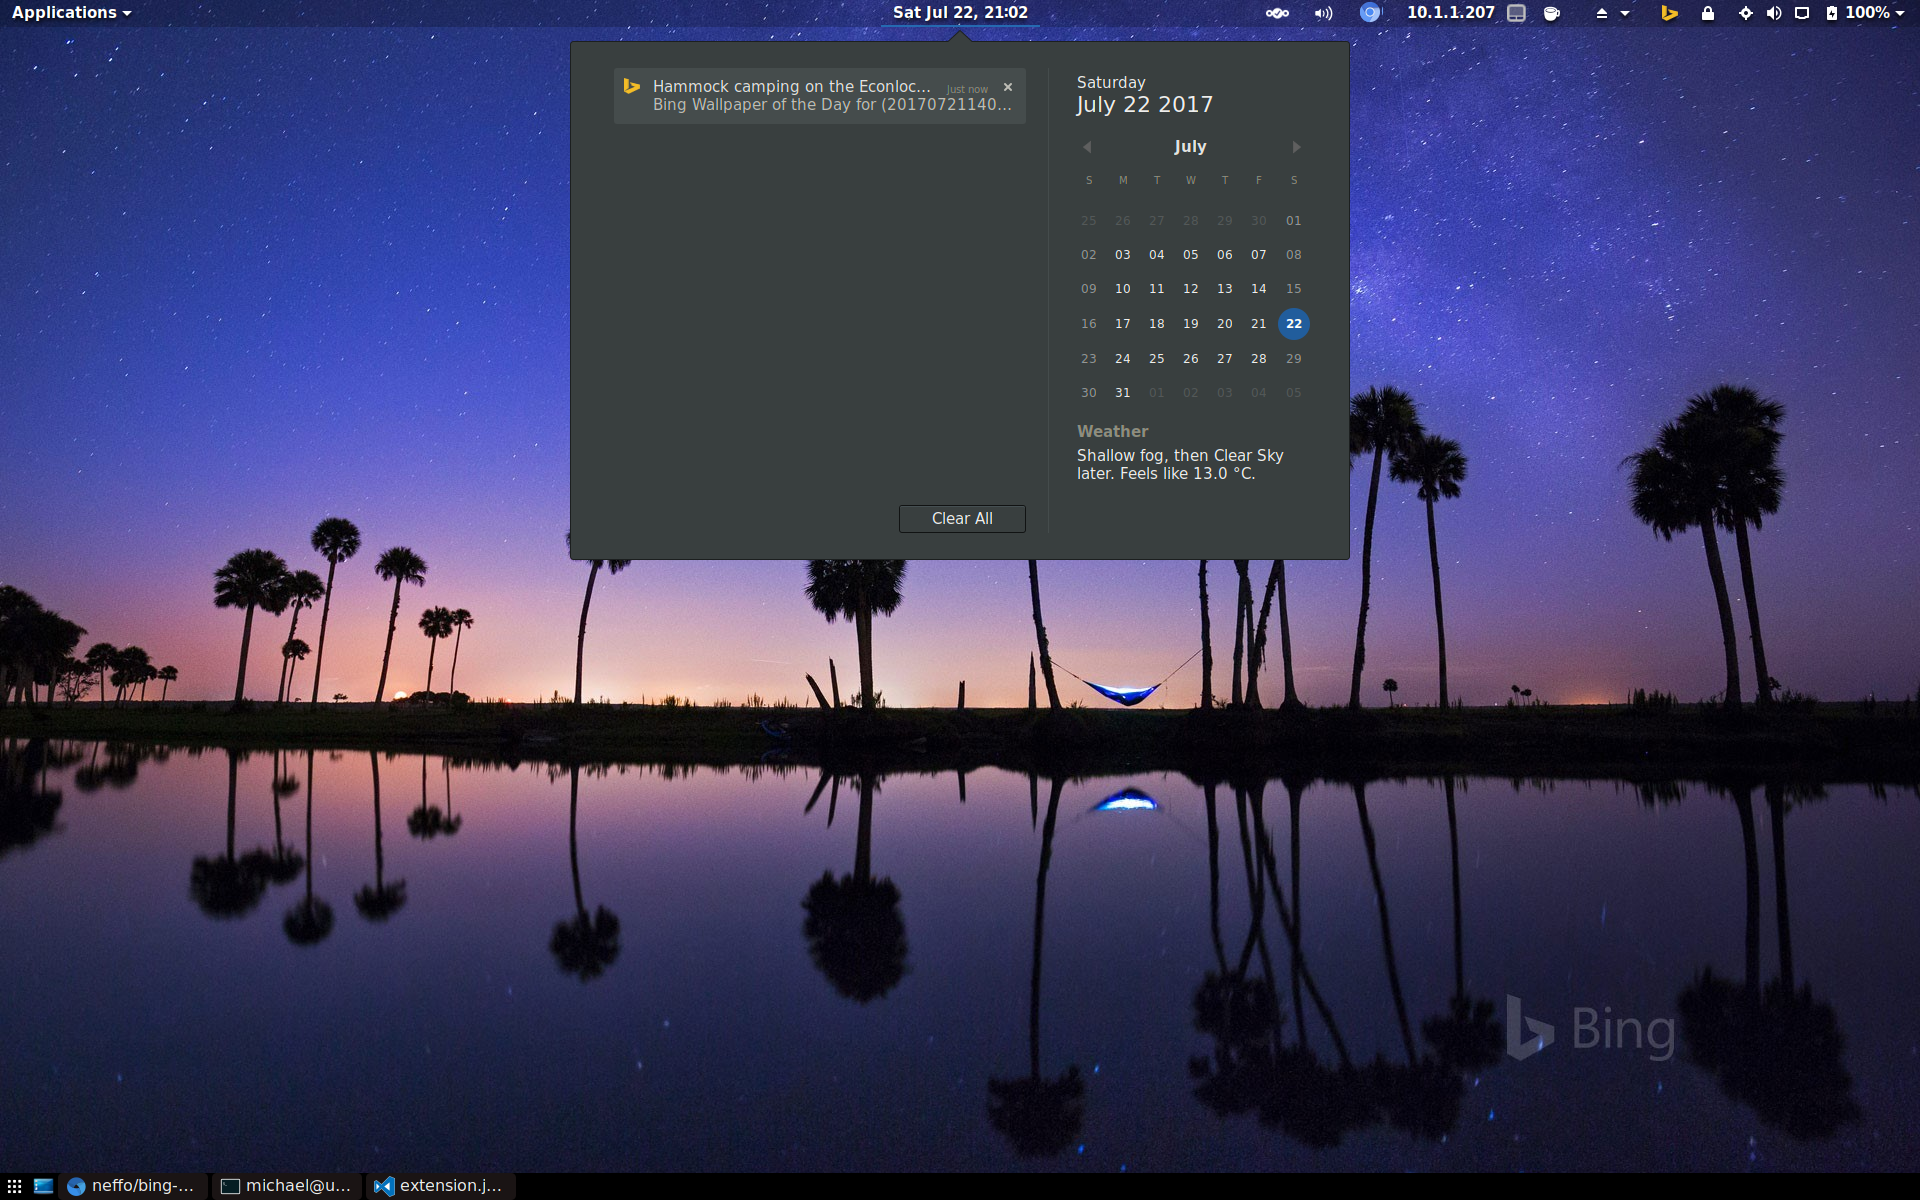 Lightweight GNOME Shell Extension To Change Your Wallpaper Every Day Microsoft Bings The Image You See When Visit Bing